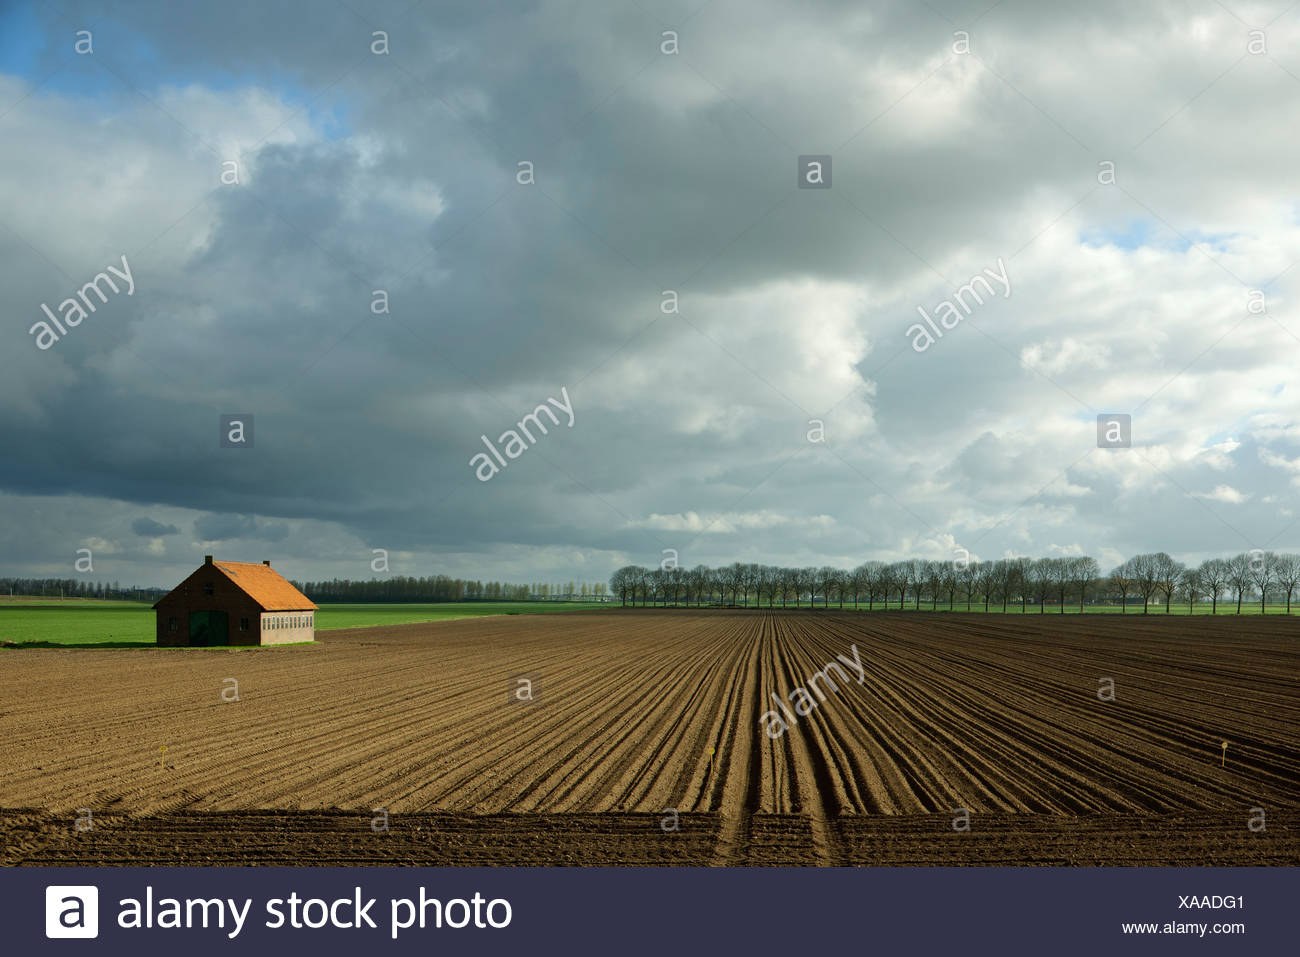 Trees growing at edge of dry field - Stock Image